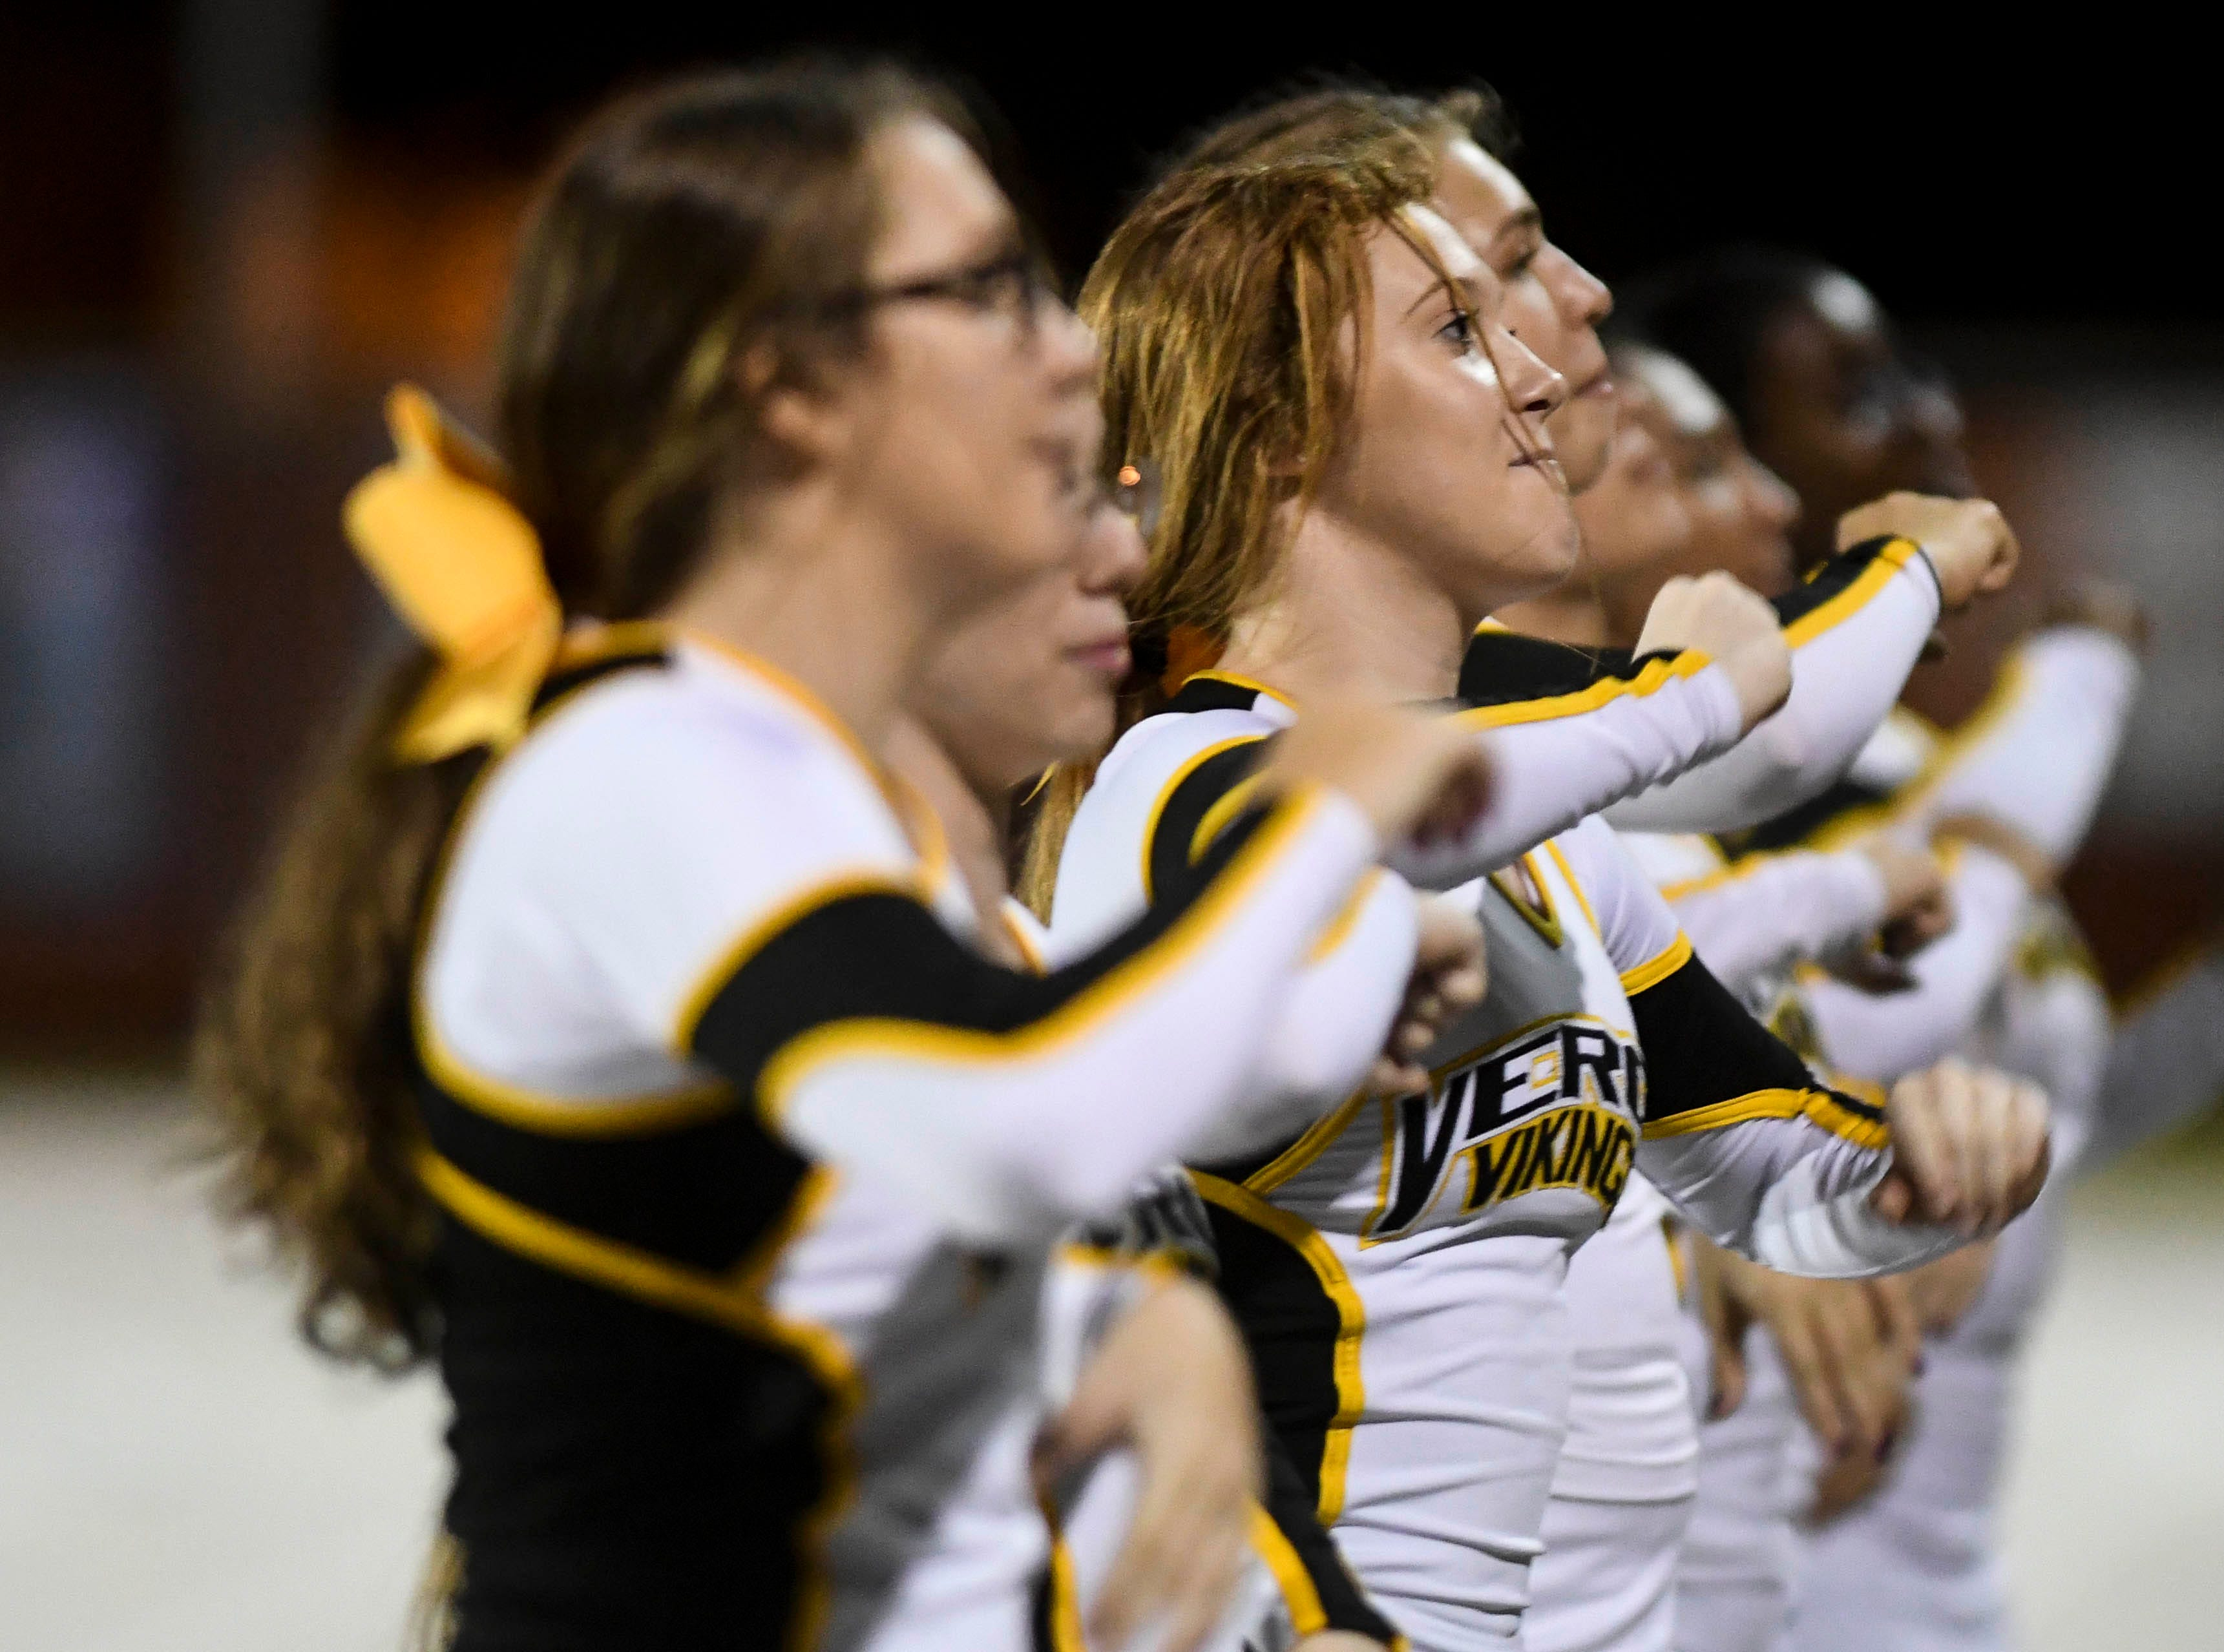 Bishop Verot cheerleaders root for the Vikings during Friday's football game against Cocoa.